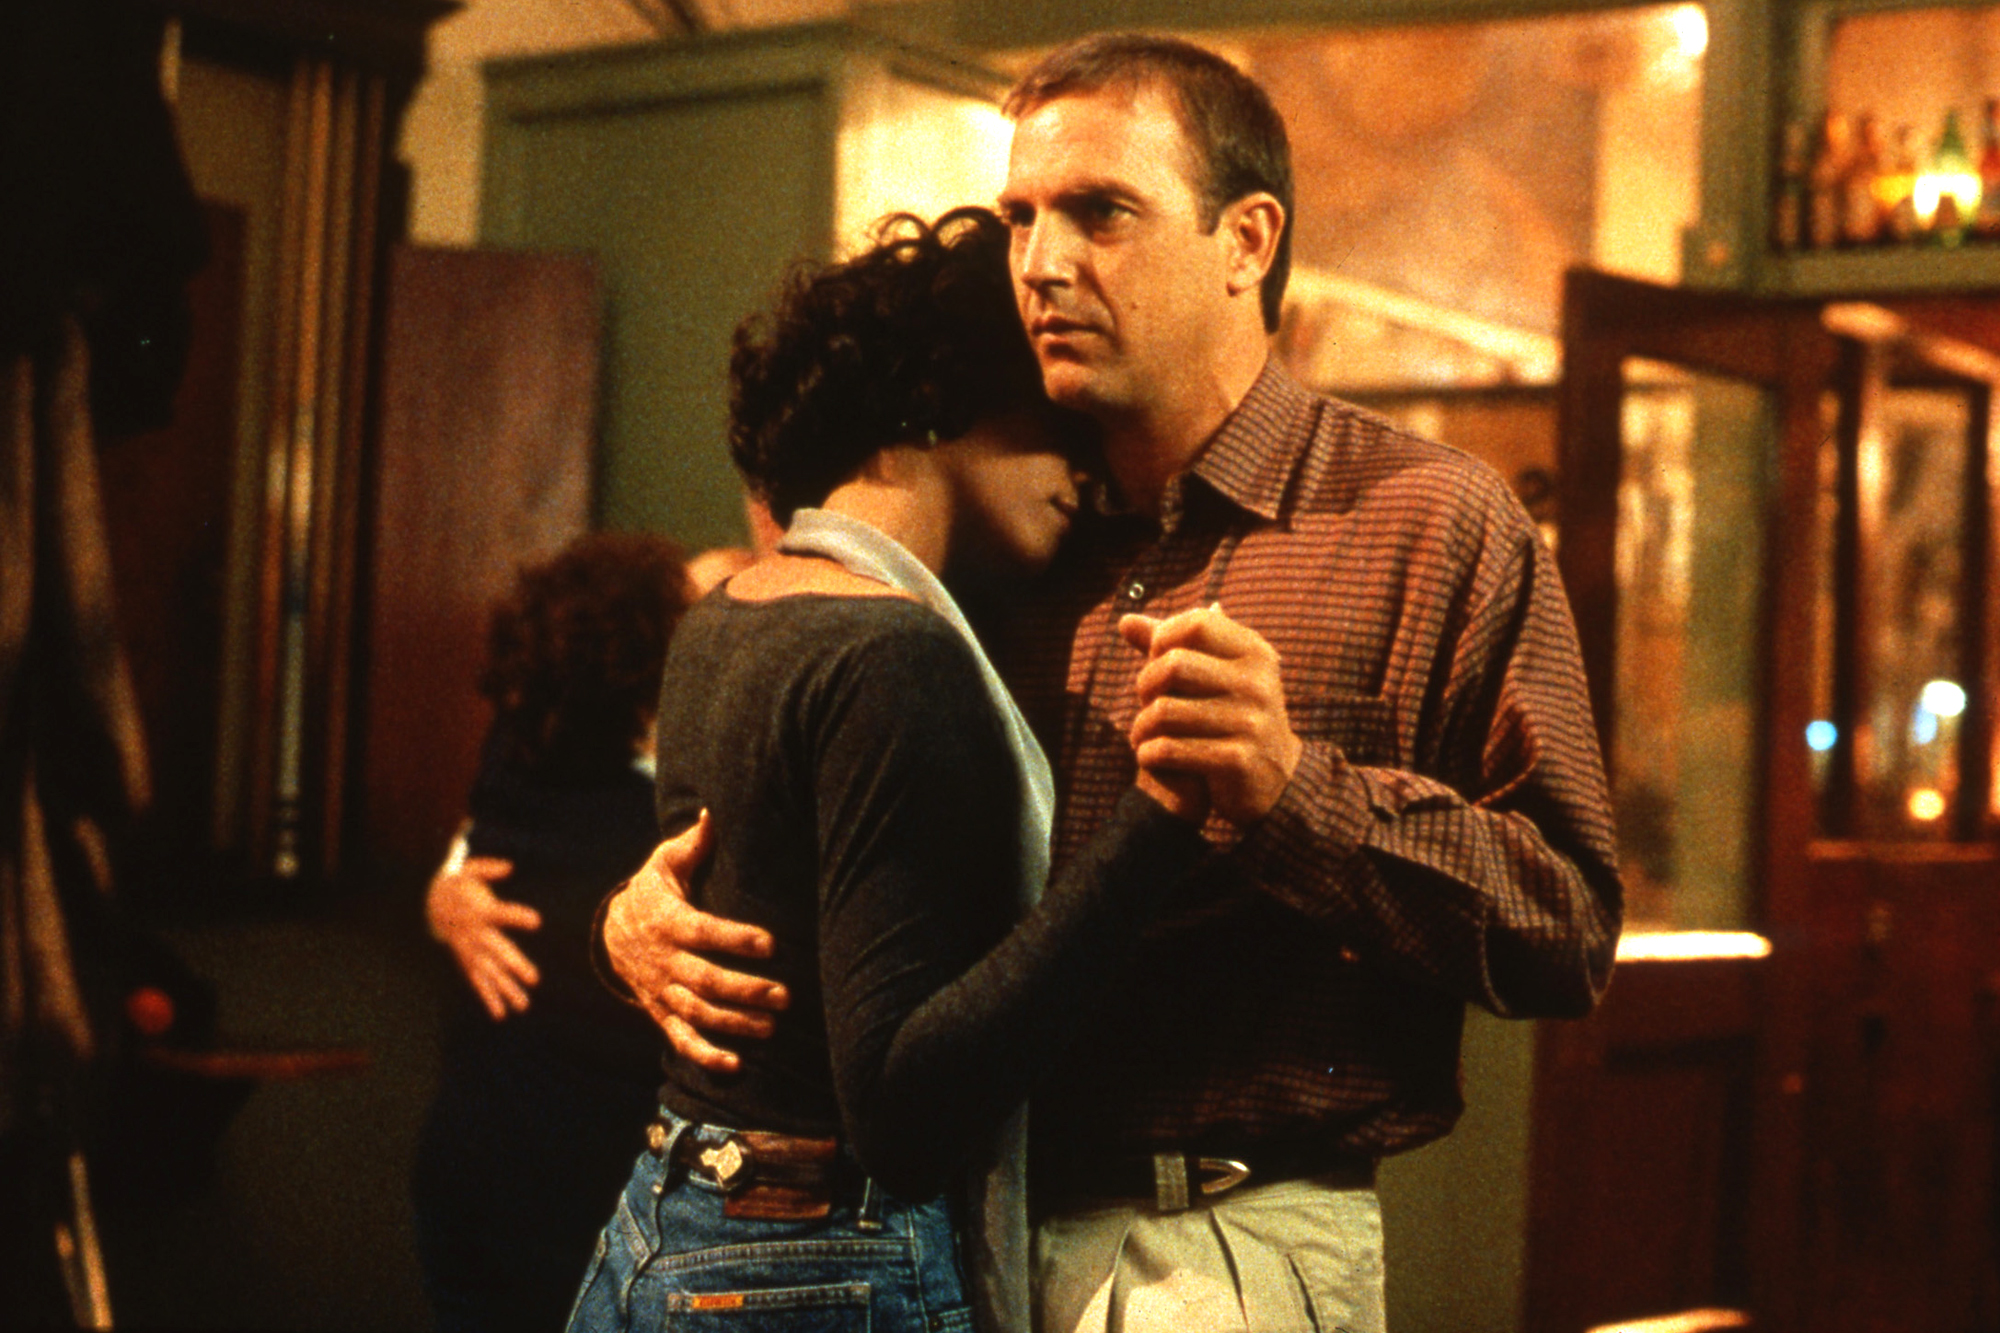 The Bodyguard (1992)Whitney Houston and Kevin Costner